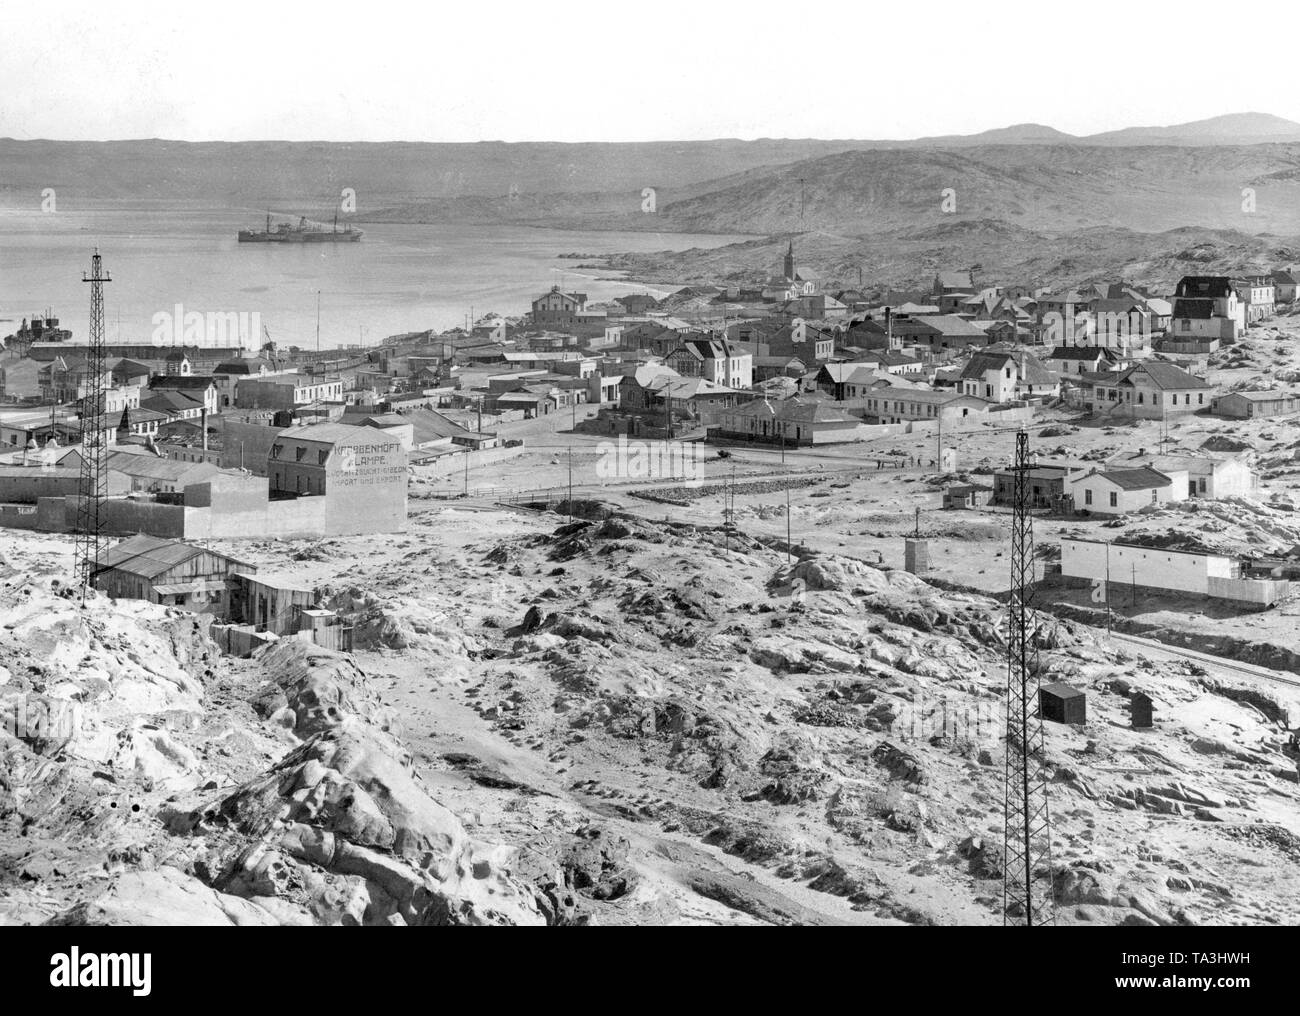 The coastal town of Luederitz Bay, shortly after the first settlers settled in German South West Africa. - Stock Image